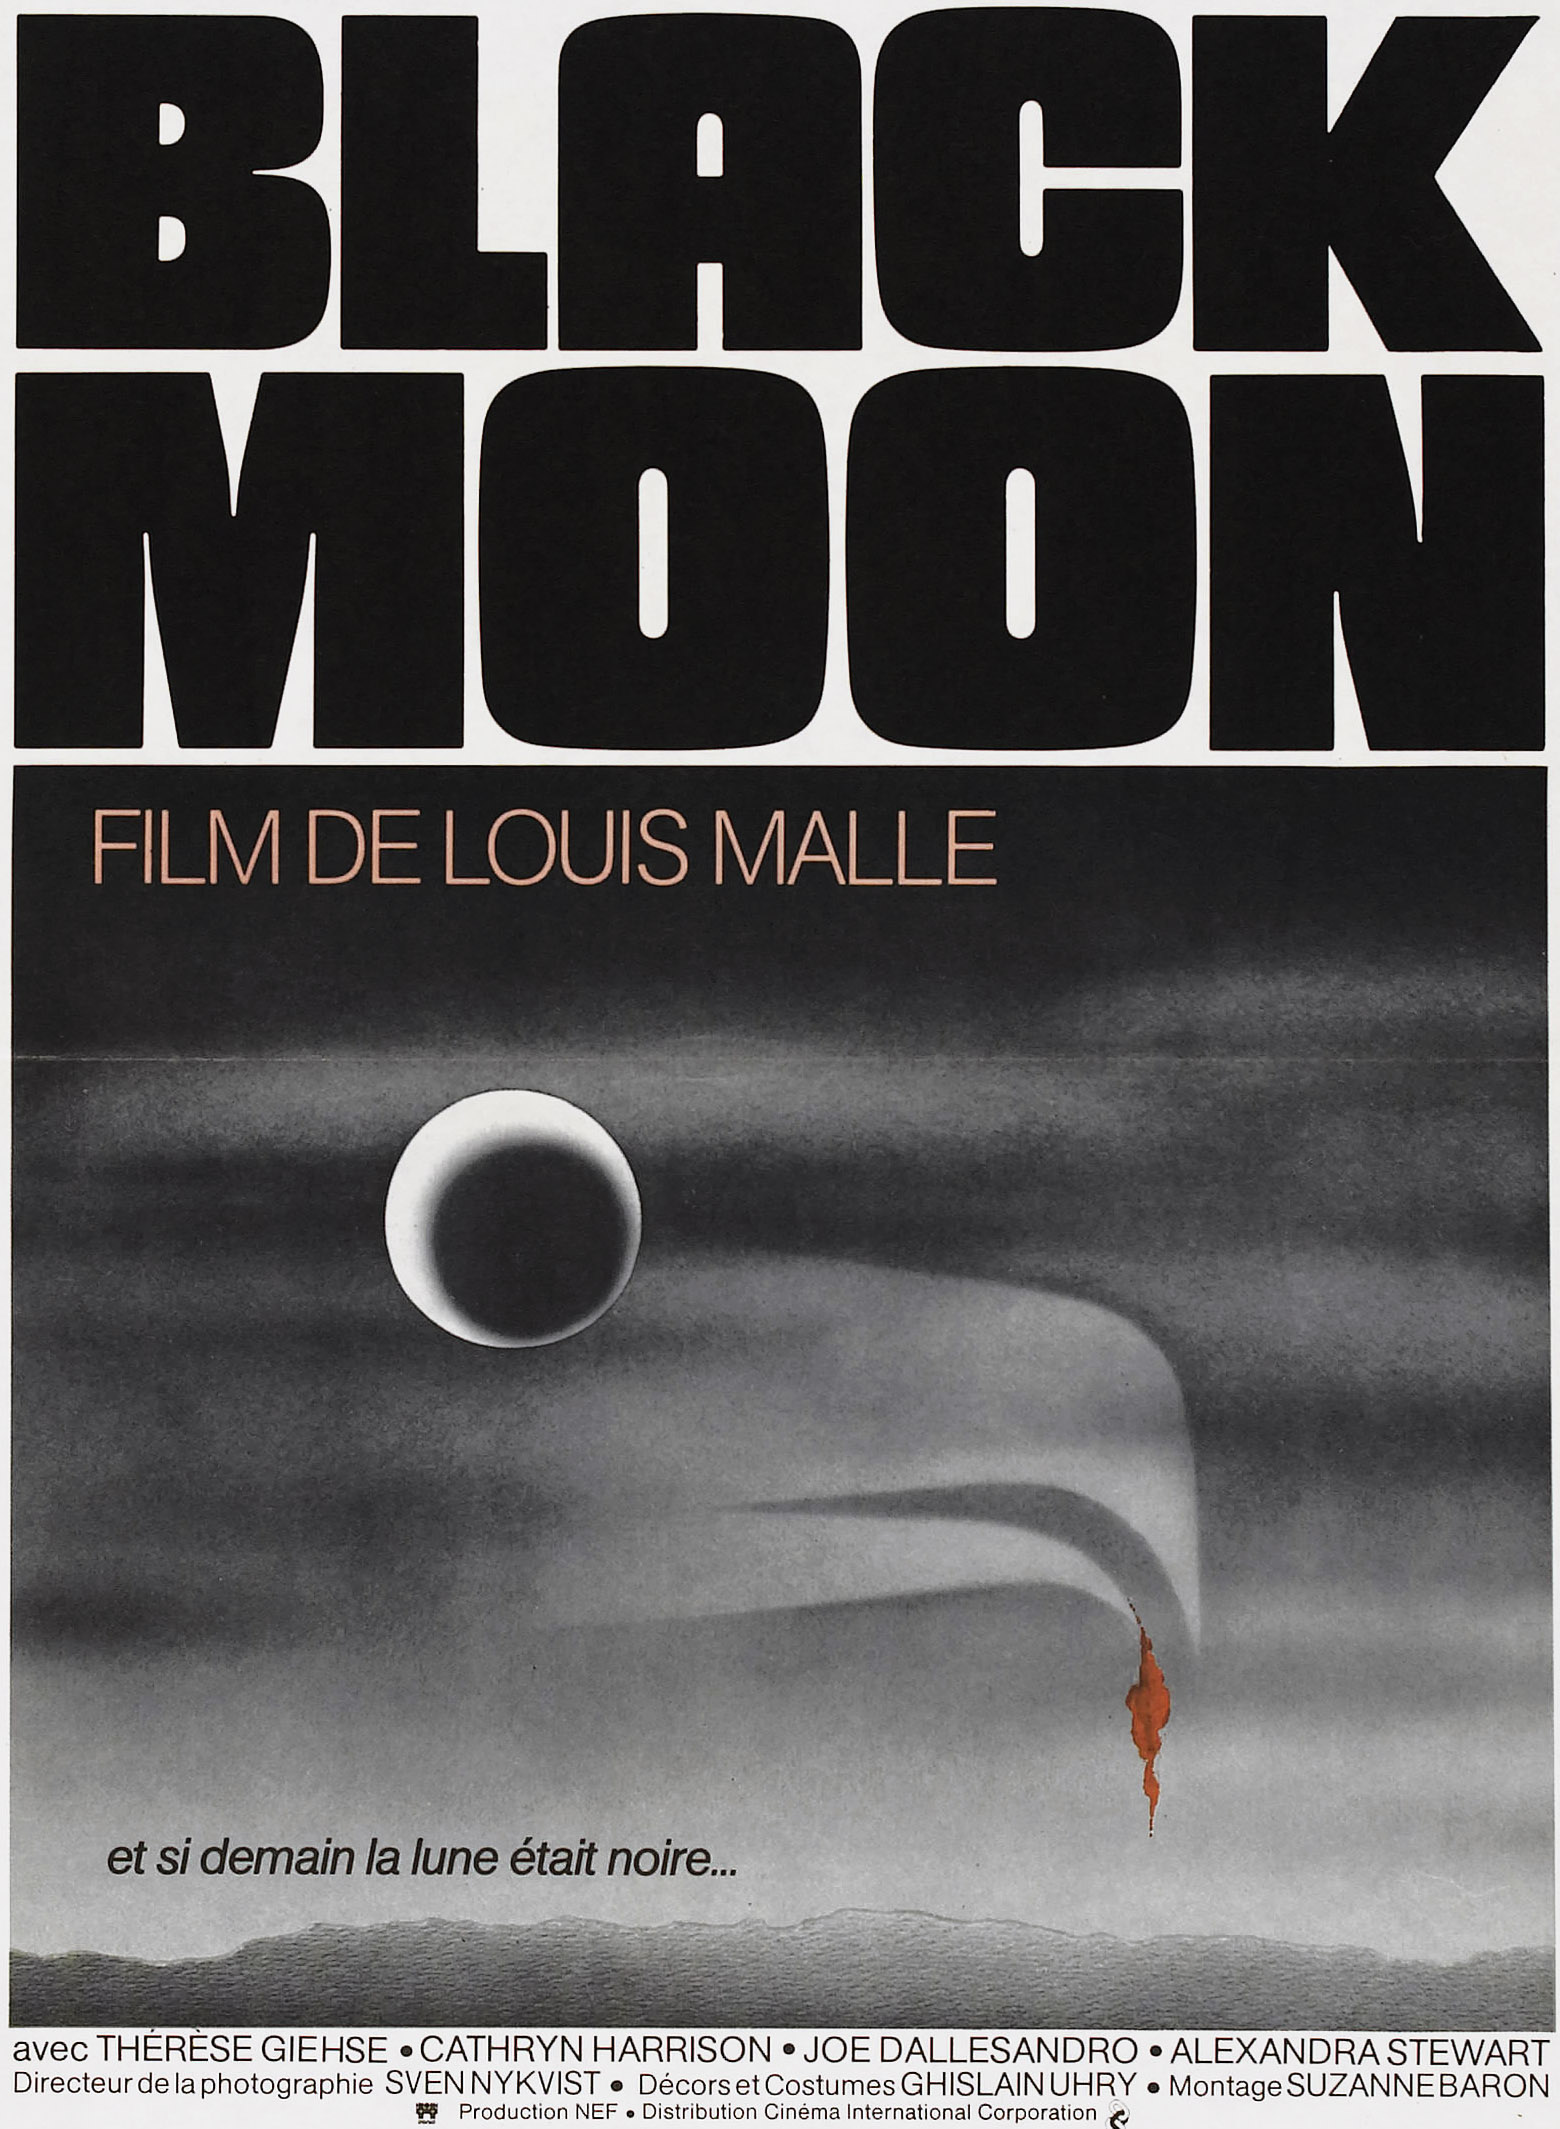 Black Moon (1975) - Directed by: Luis MalleStarring: Cathryn Harrison, Theresa Giehse, Alexandra StewartRated: RRunning Time: 1h 35mTMM Score: 2 StarsSTRENGTHS: Strong Opening, Cinematography, MysteryWEAKNESSES: Opaque and Boring